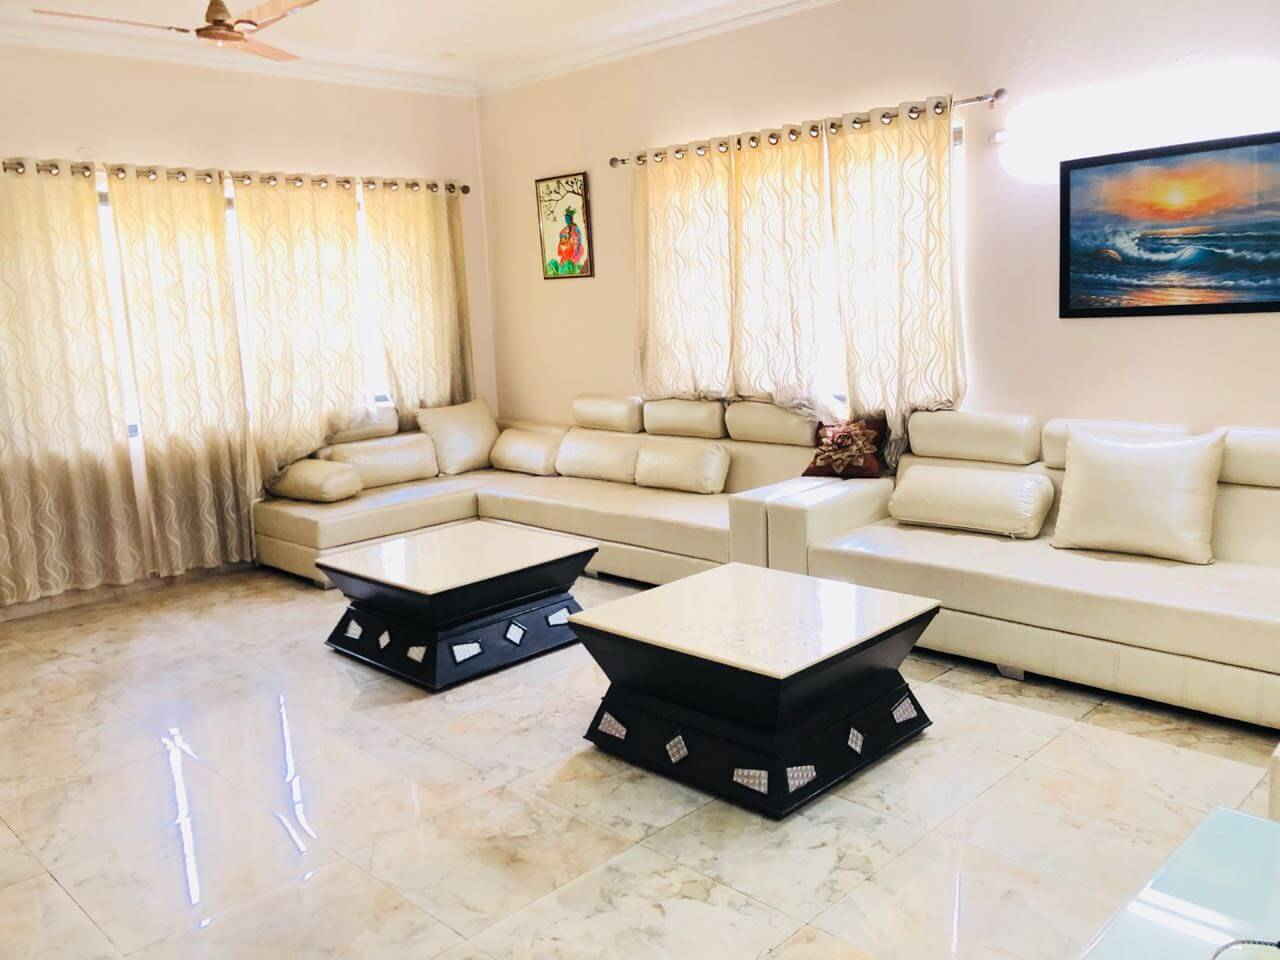 10-BHK VILLA in Sector 51, Noida. Less than 5 years old. property for Sale